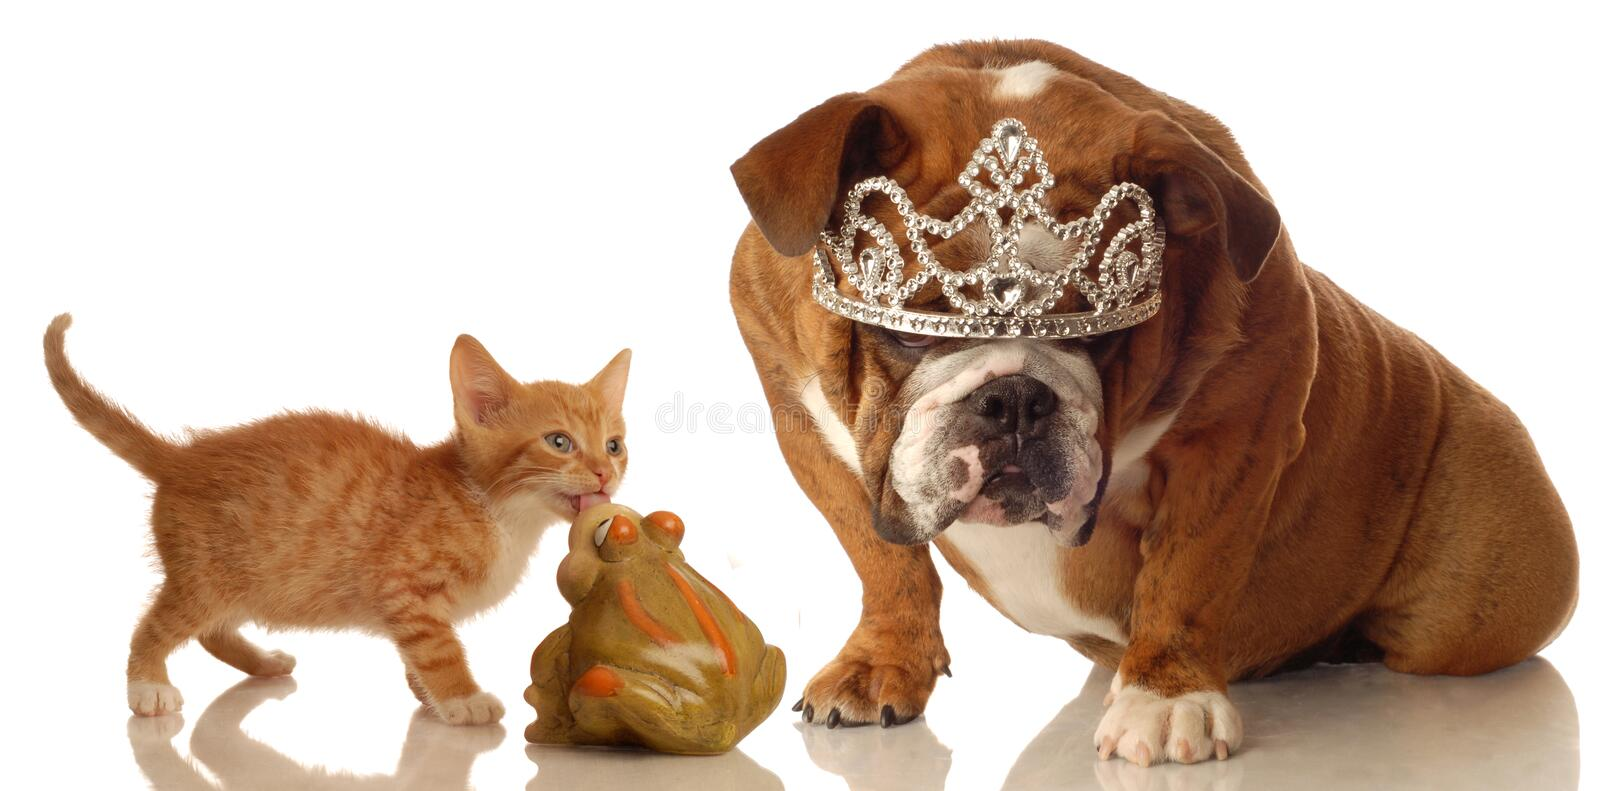 Kitten Kissing Toad But Gets Dog Royalty Free Stock Image